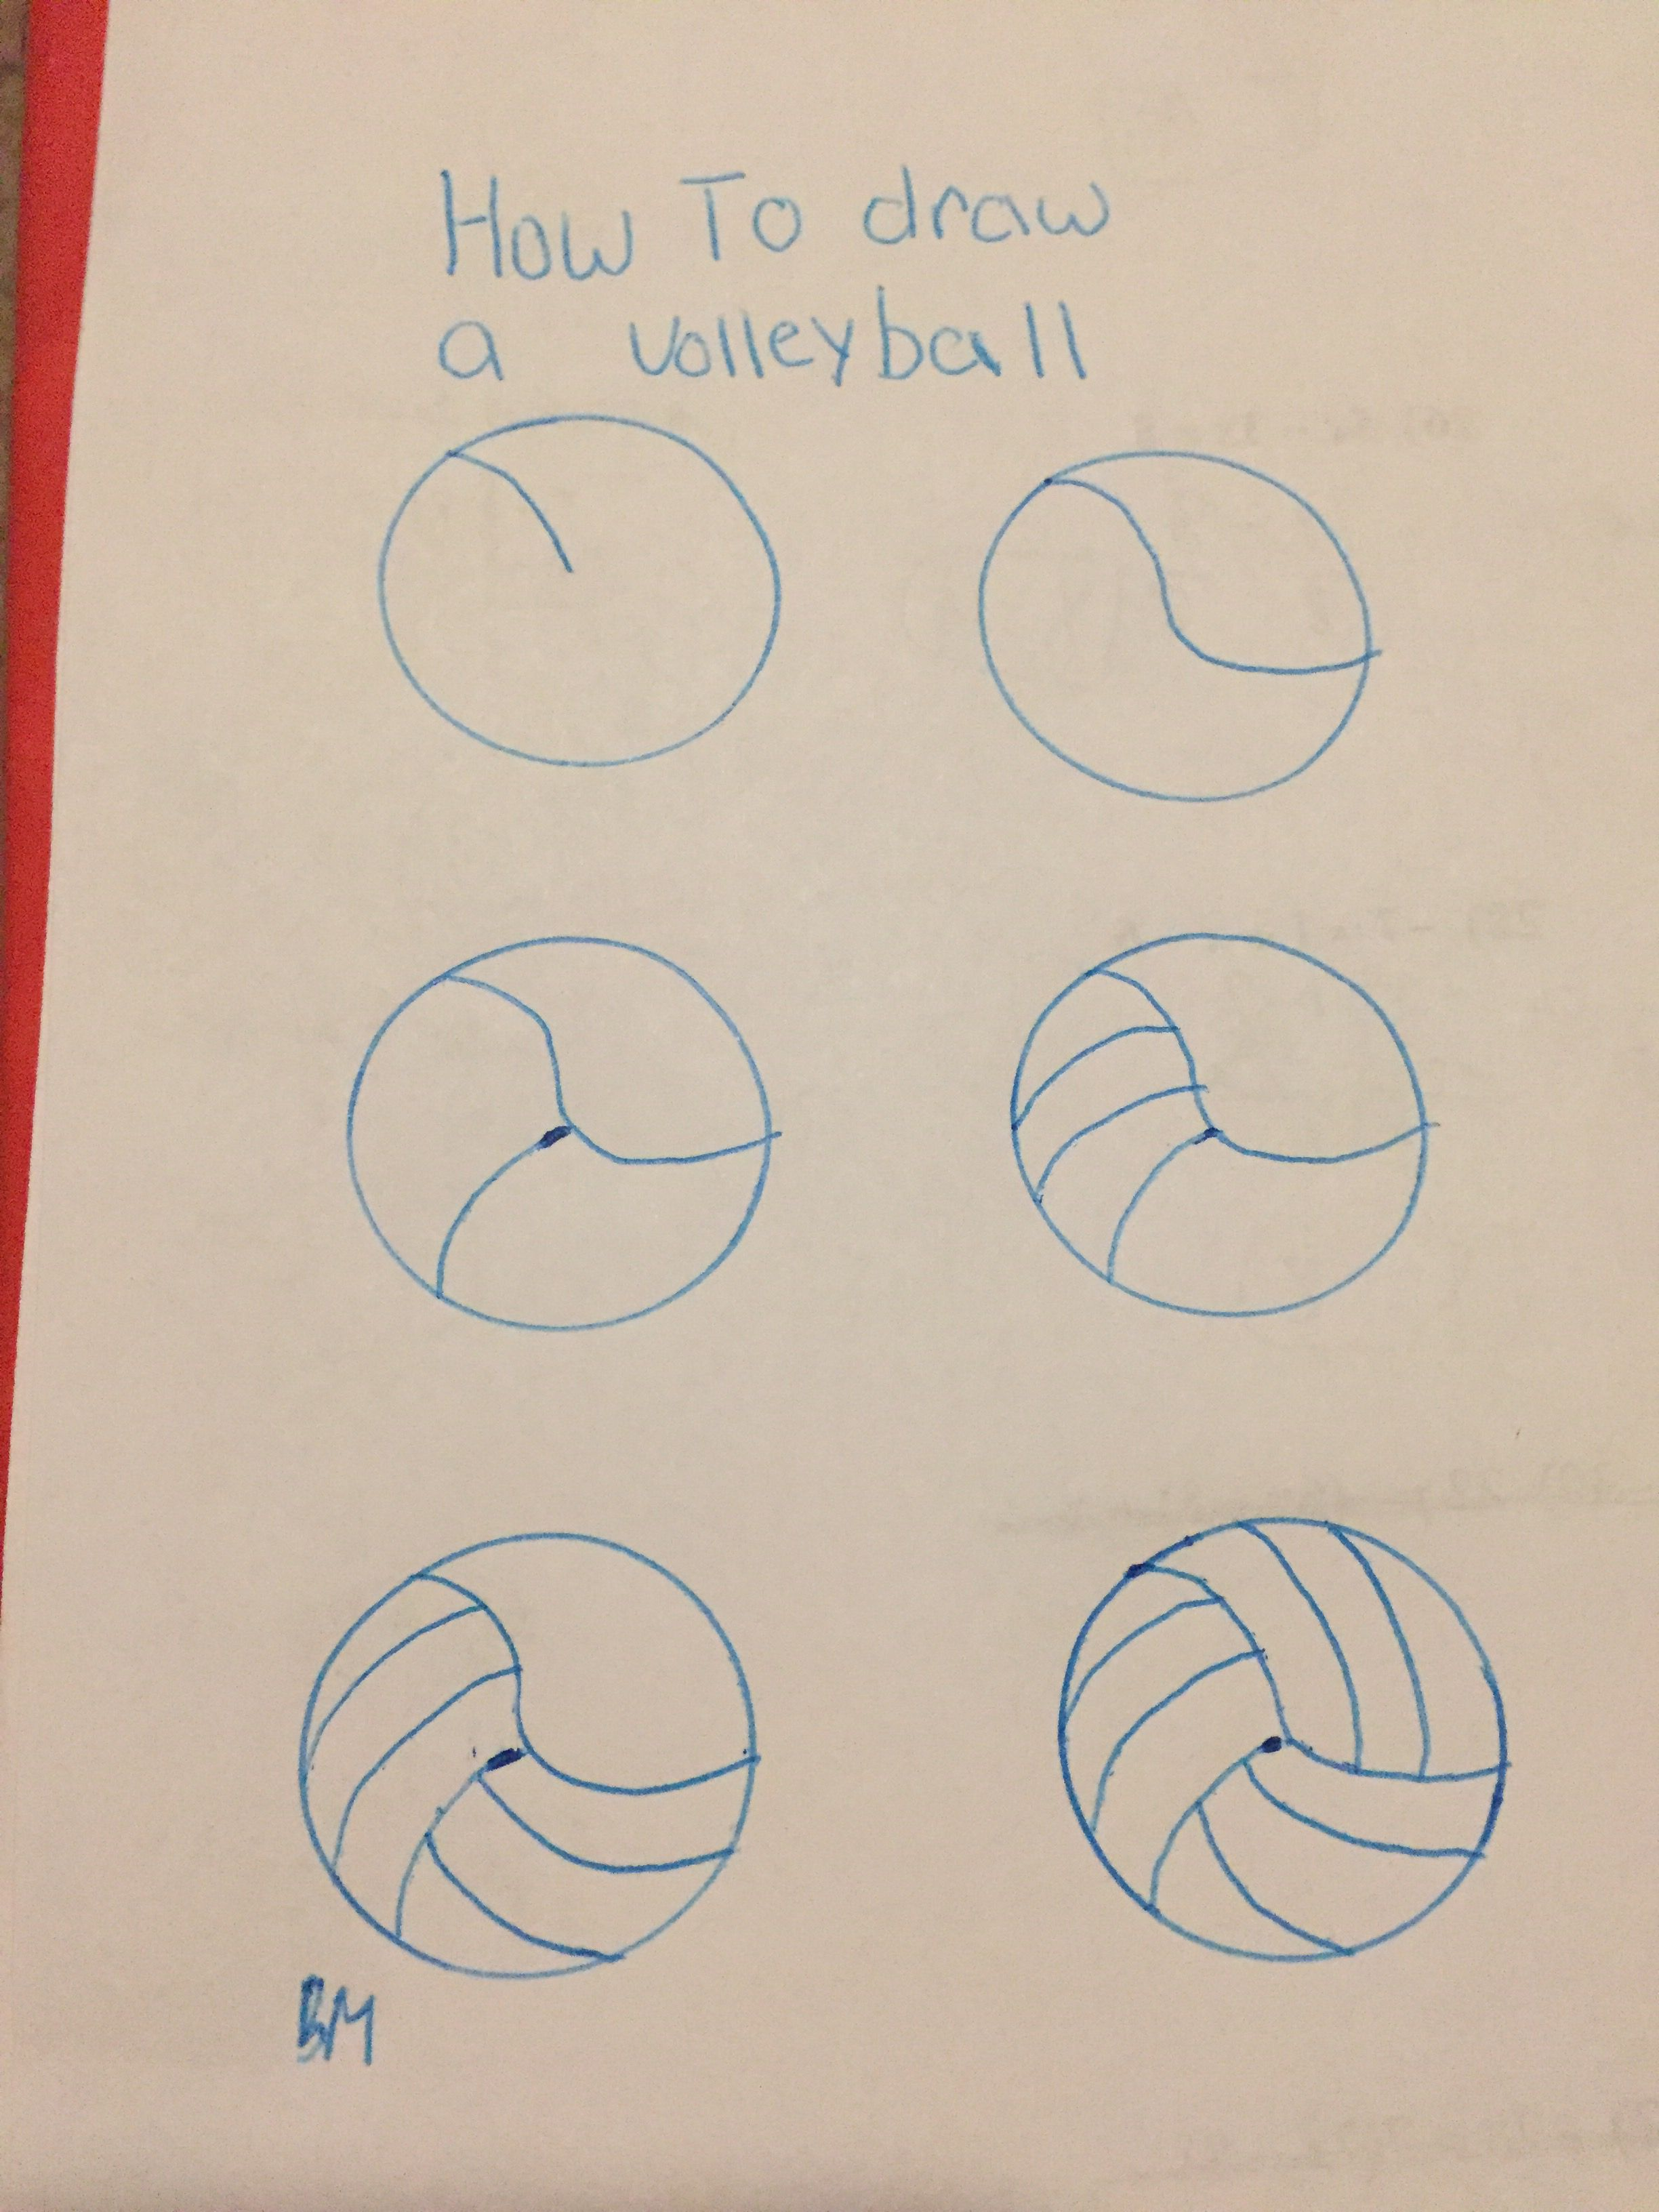 How To Draw A Volleyball Volleyball Drawing Ball Drawing Bullet Journal Doodles